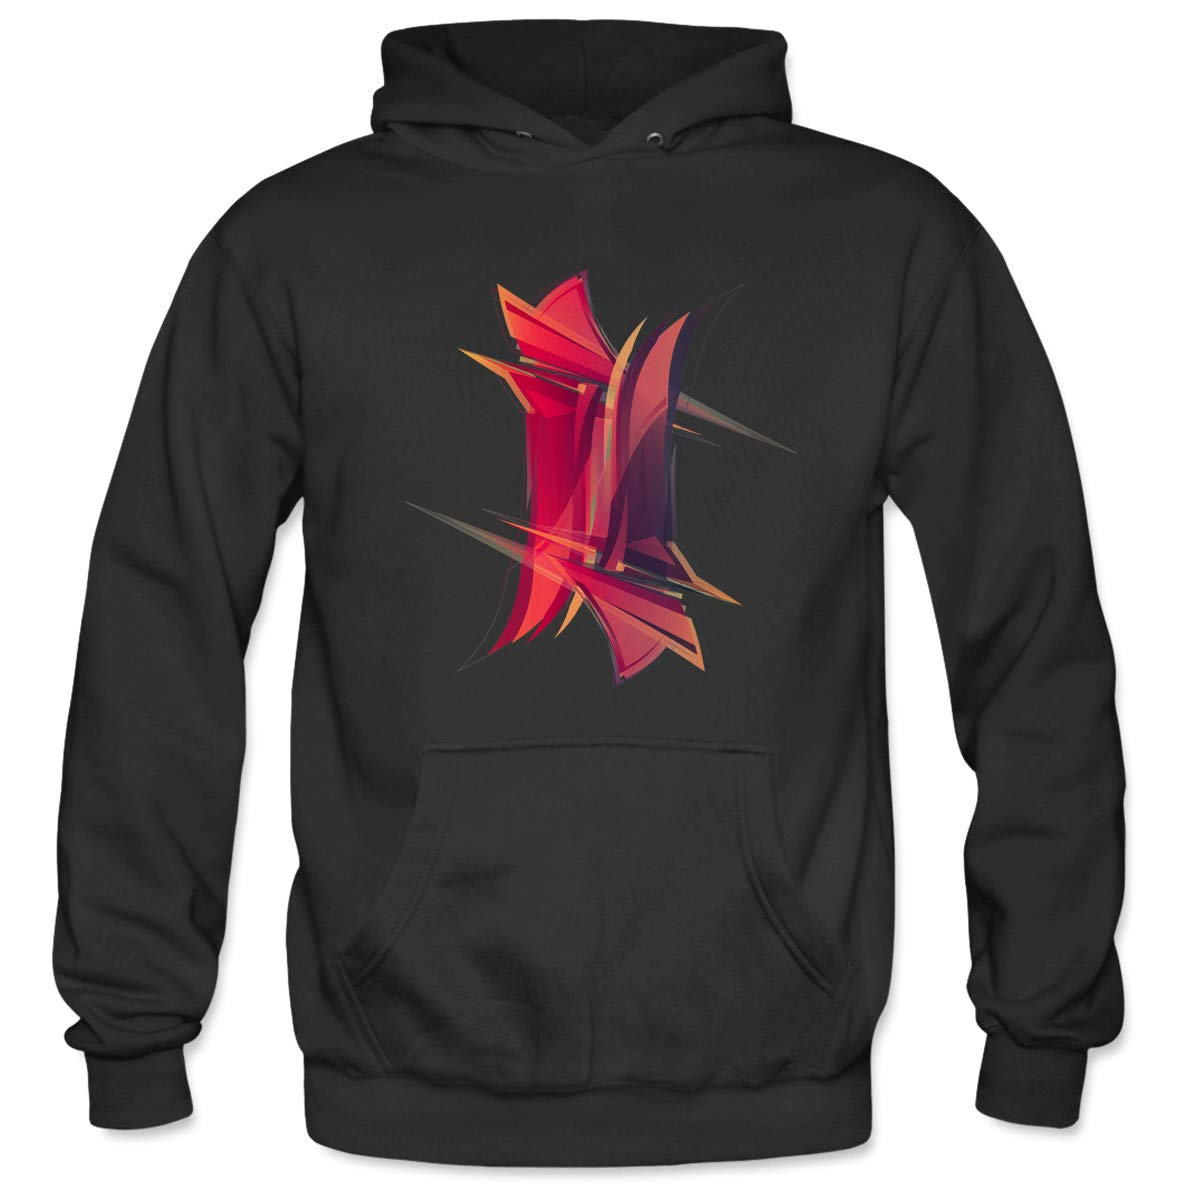 Mens Abstractshape3 Hooded Sweatshirt Funny Printed Pullover Hoodies Classic Long Sleeve T Shirt Tops